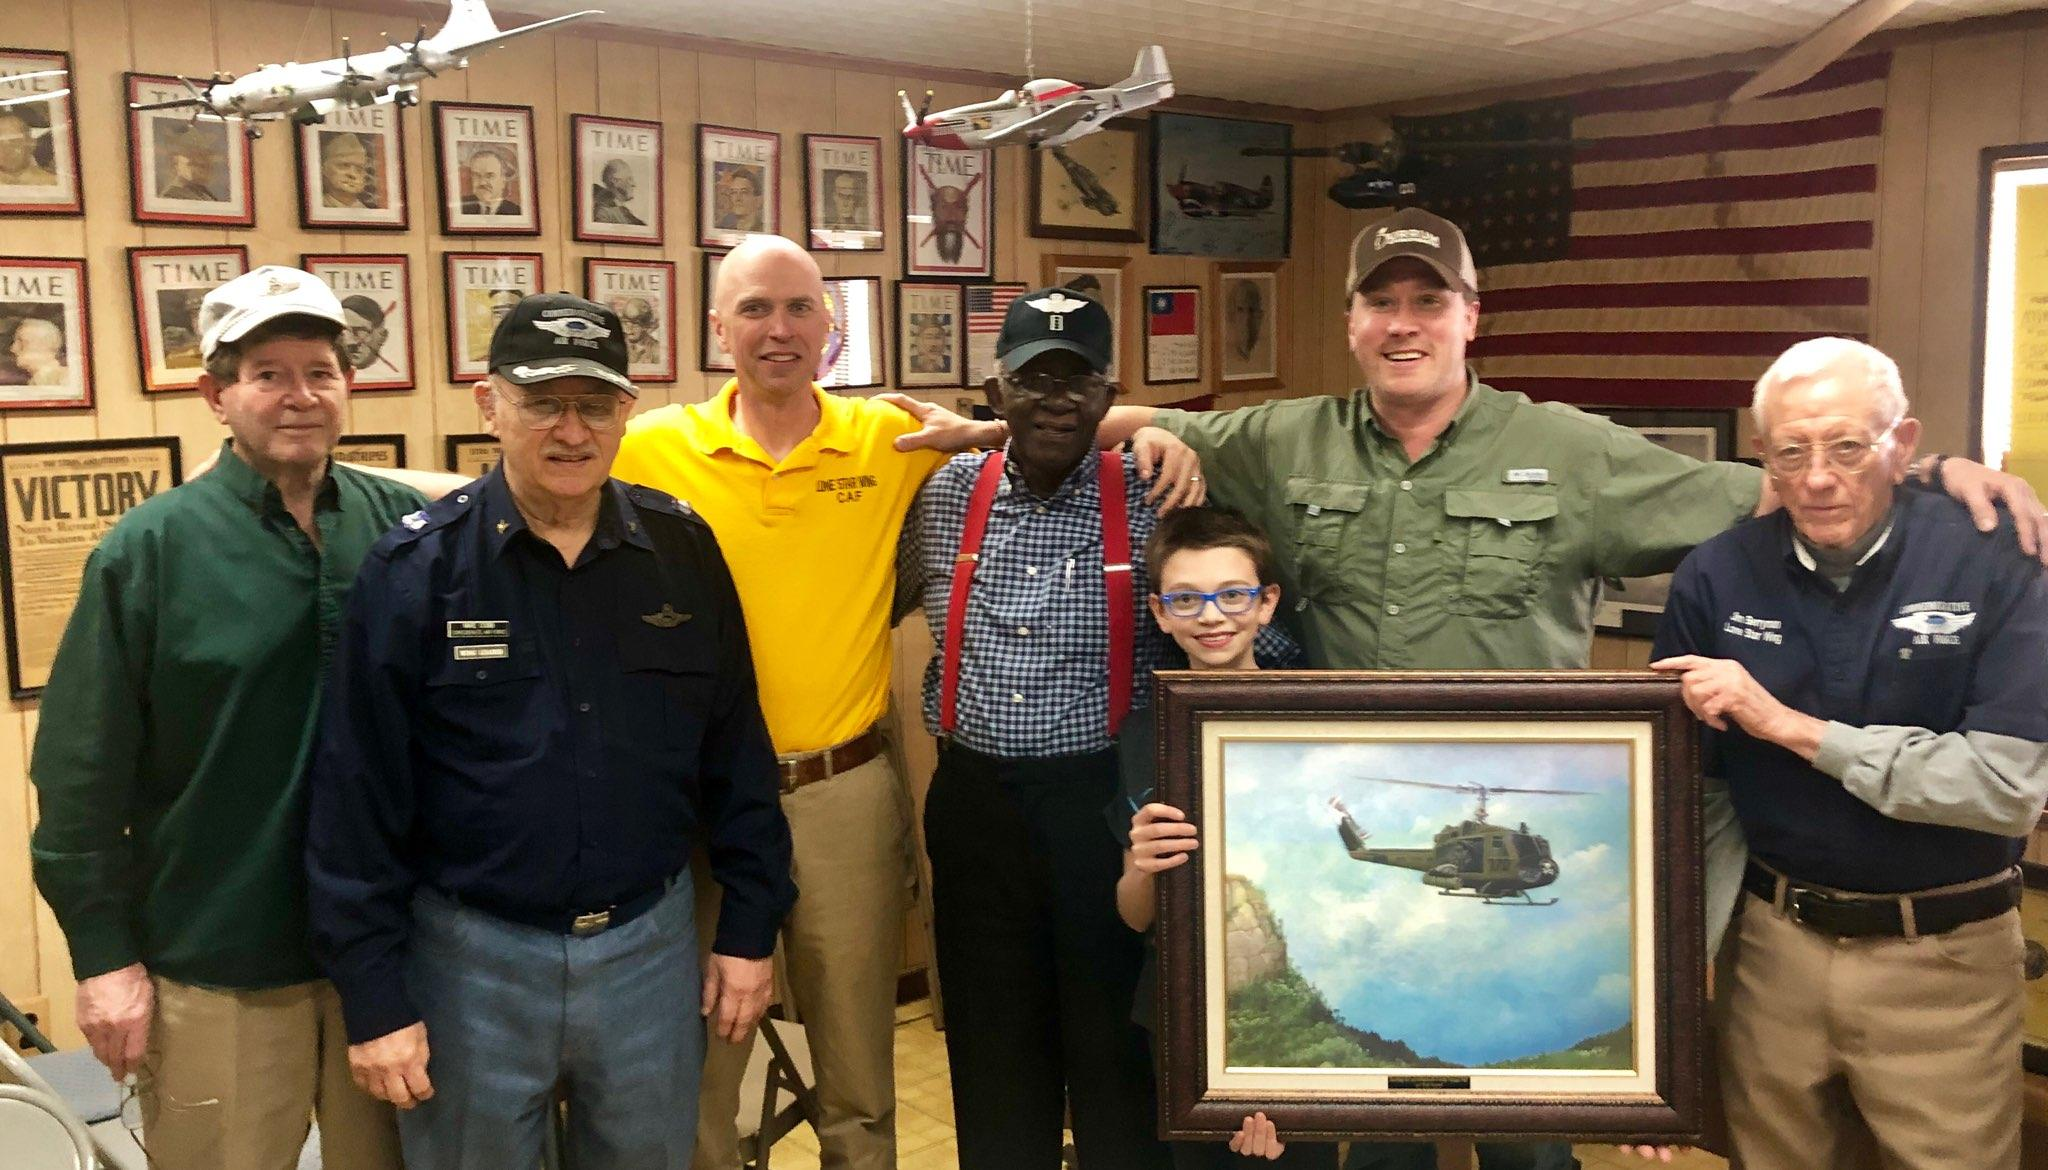 Photo of some of the members of the Lone Star Wing of the Commemorative Air Force.  Left to Right: Doyle Curry, Mike Cobb, Jimmy Page, Bob Snead, Wilson Page, Travis Keeney, and Jim Berryman.  Pictured with an original artwork donated by Bob of his UH-1C gunship 136, entitled